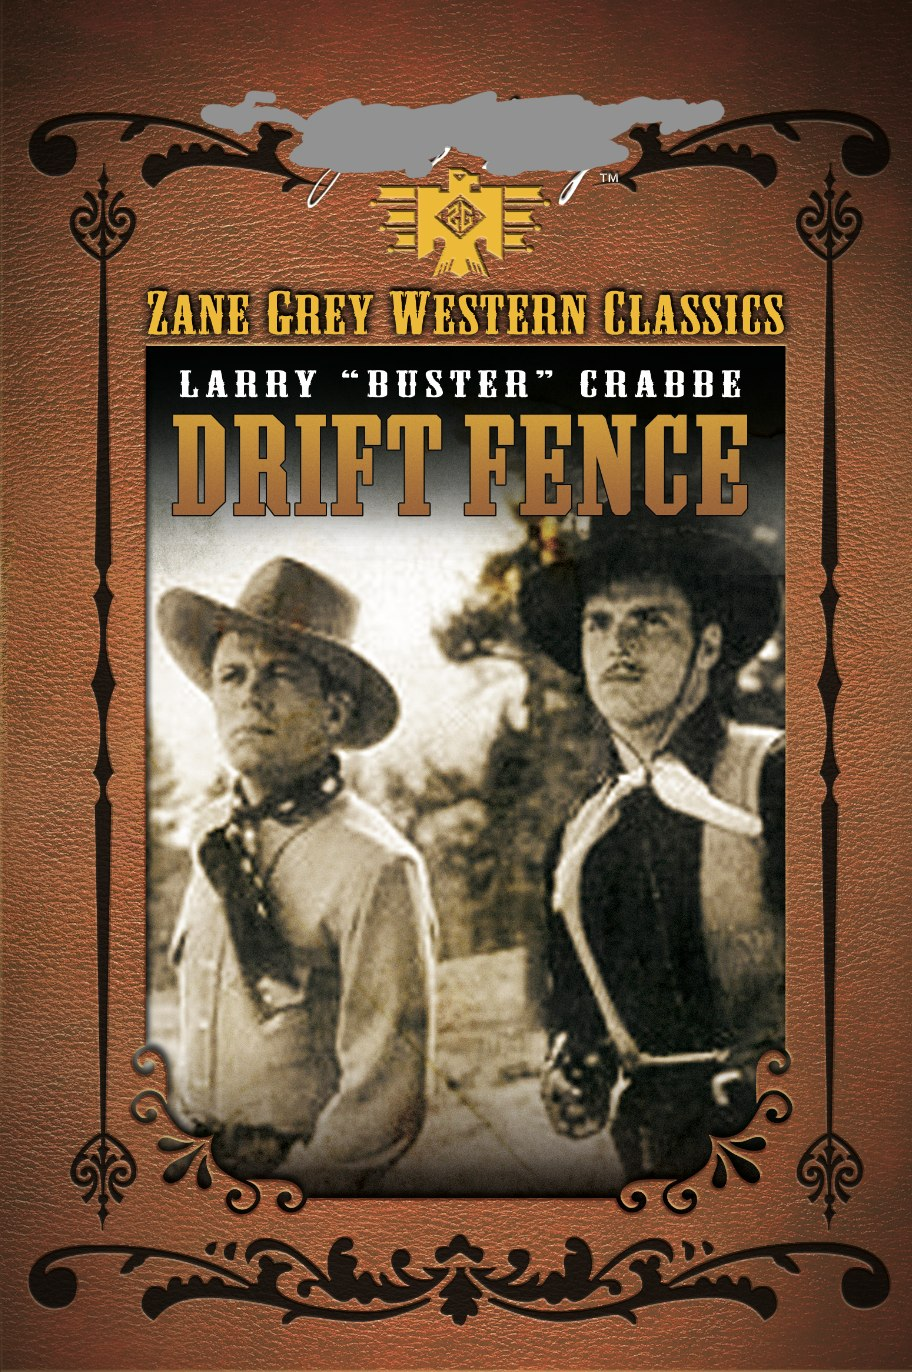 ZANE GREY: DRIFT FENCE, THE